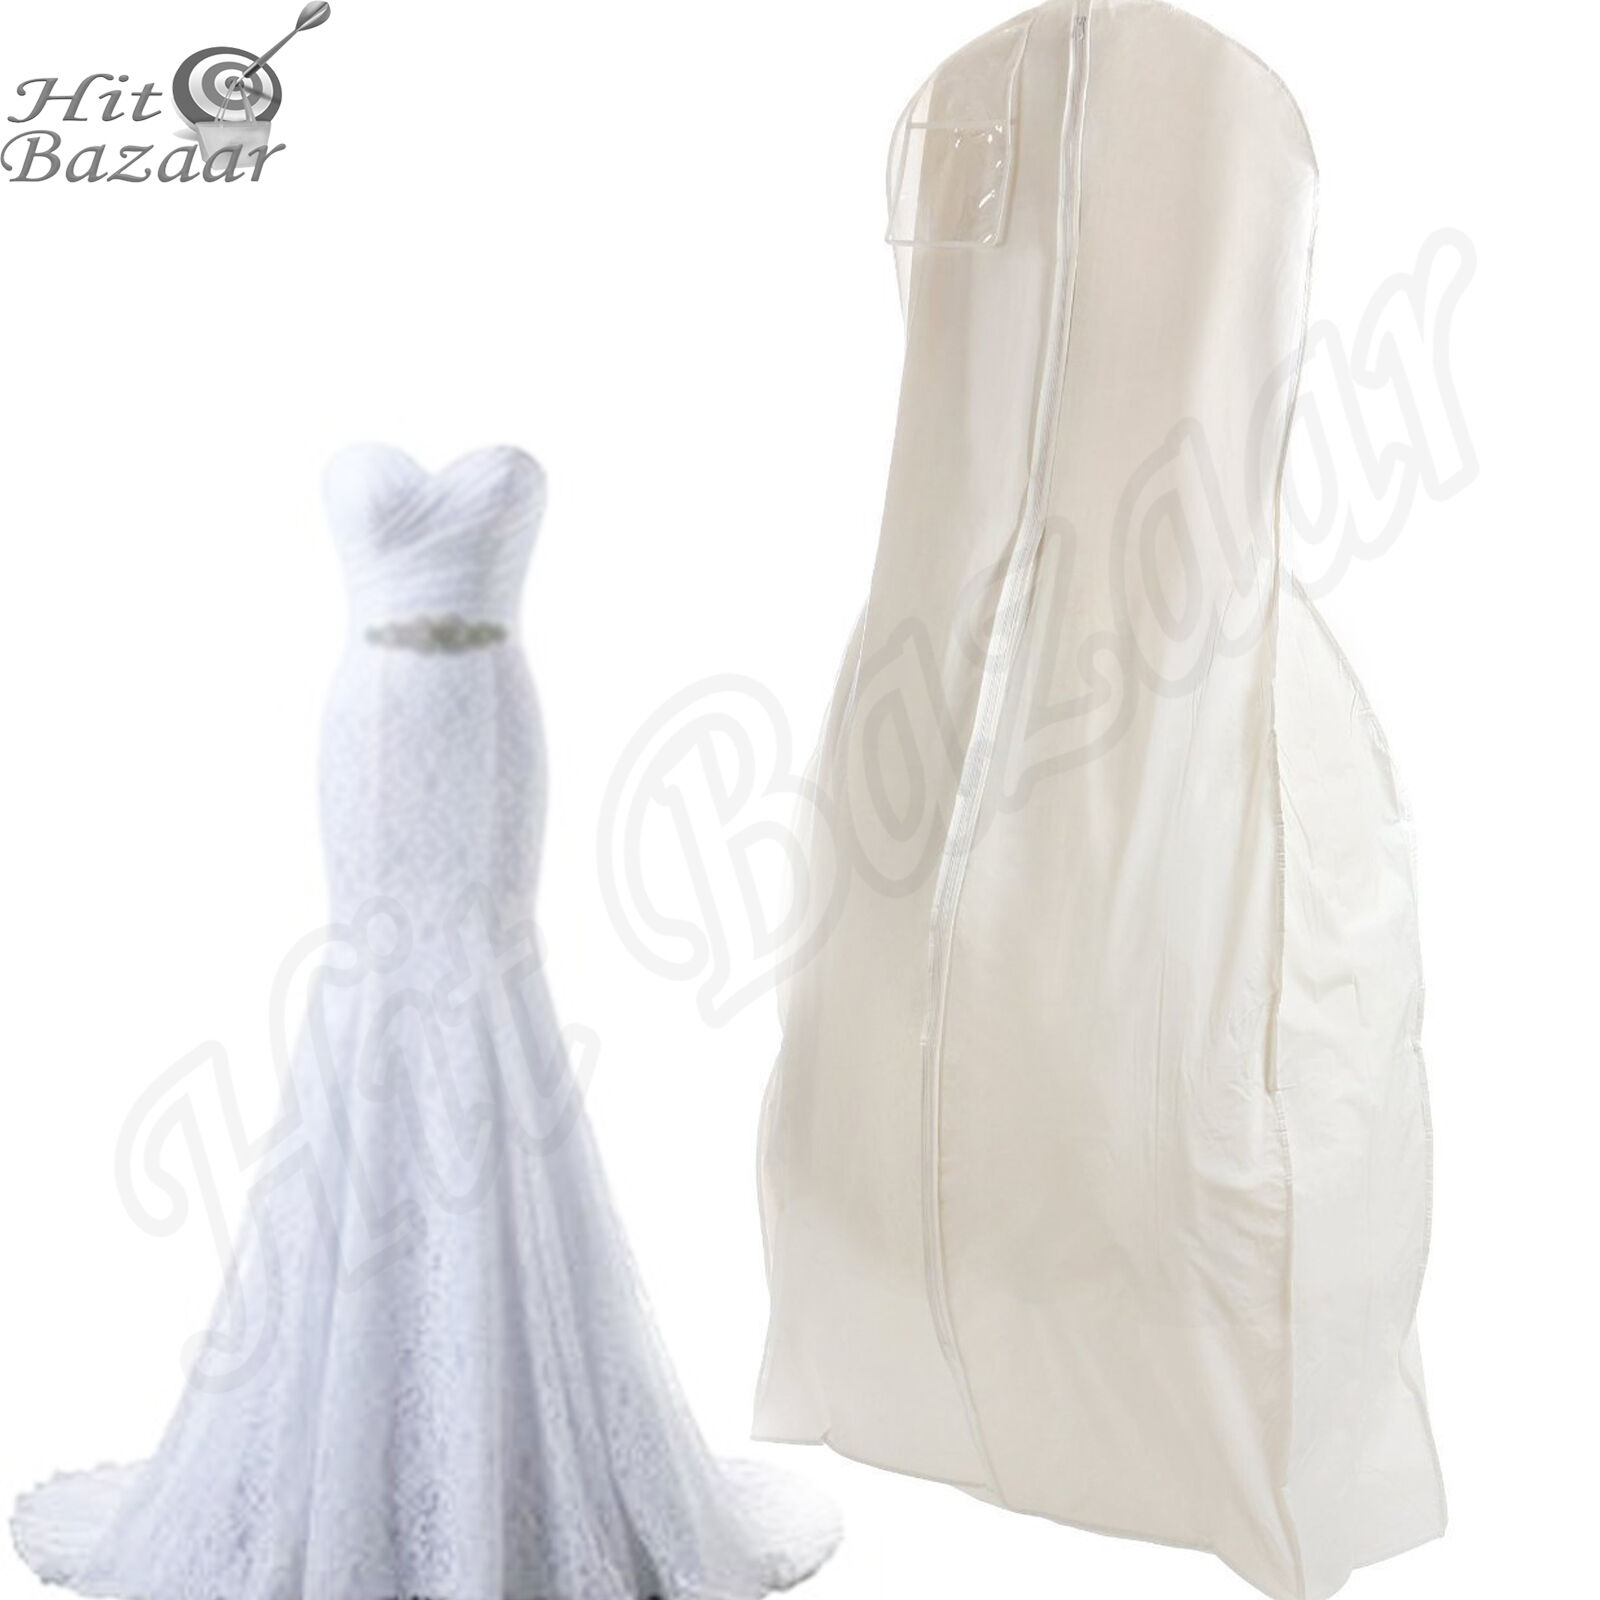 BRIDAL WEDDING DRESS Storage Gown Prom Garment Bag Center Zipper ...